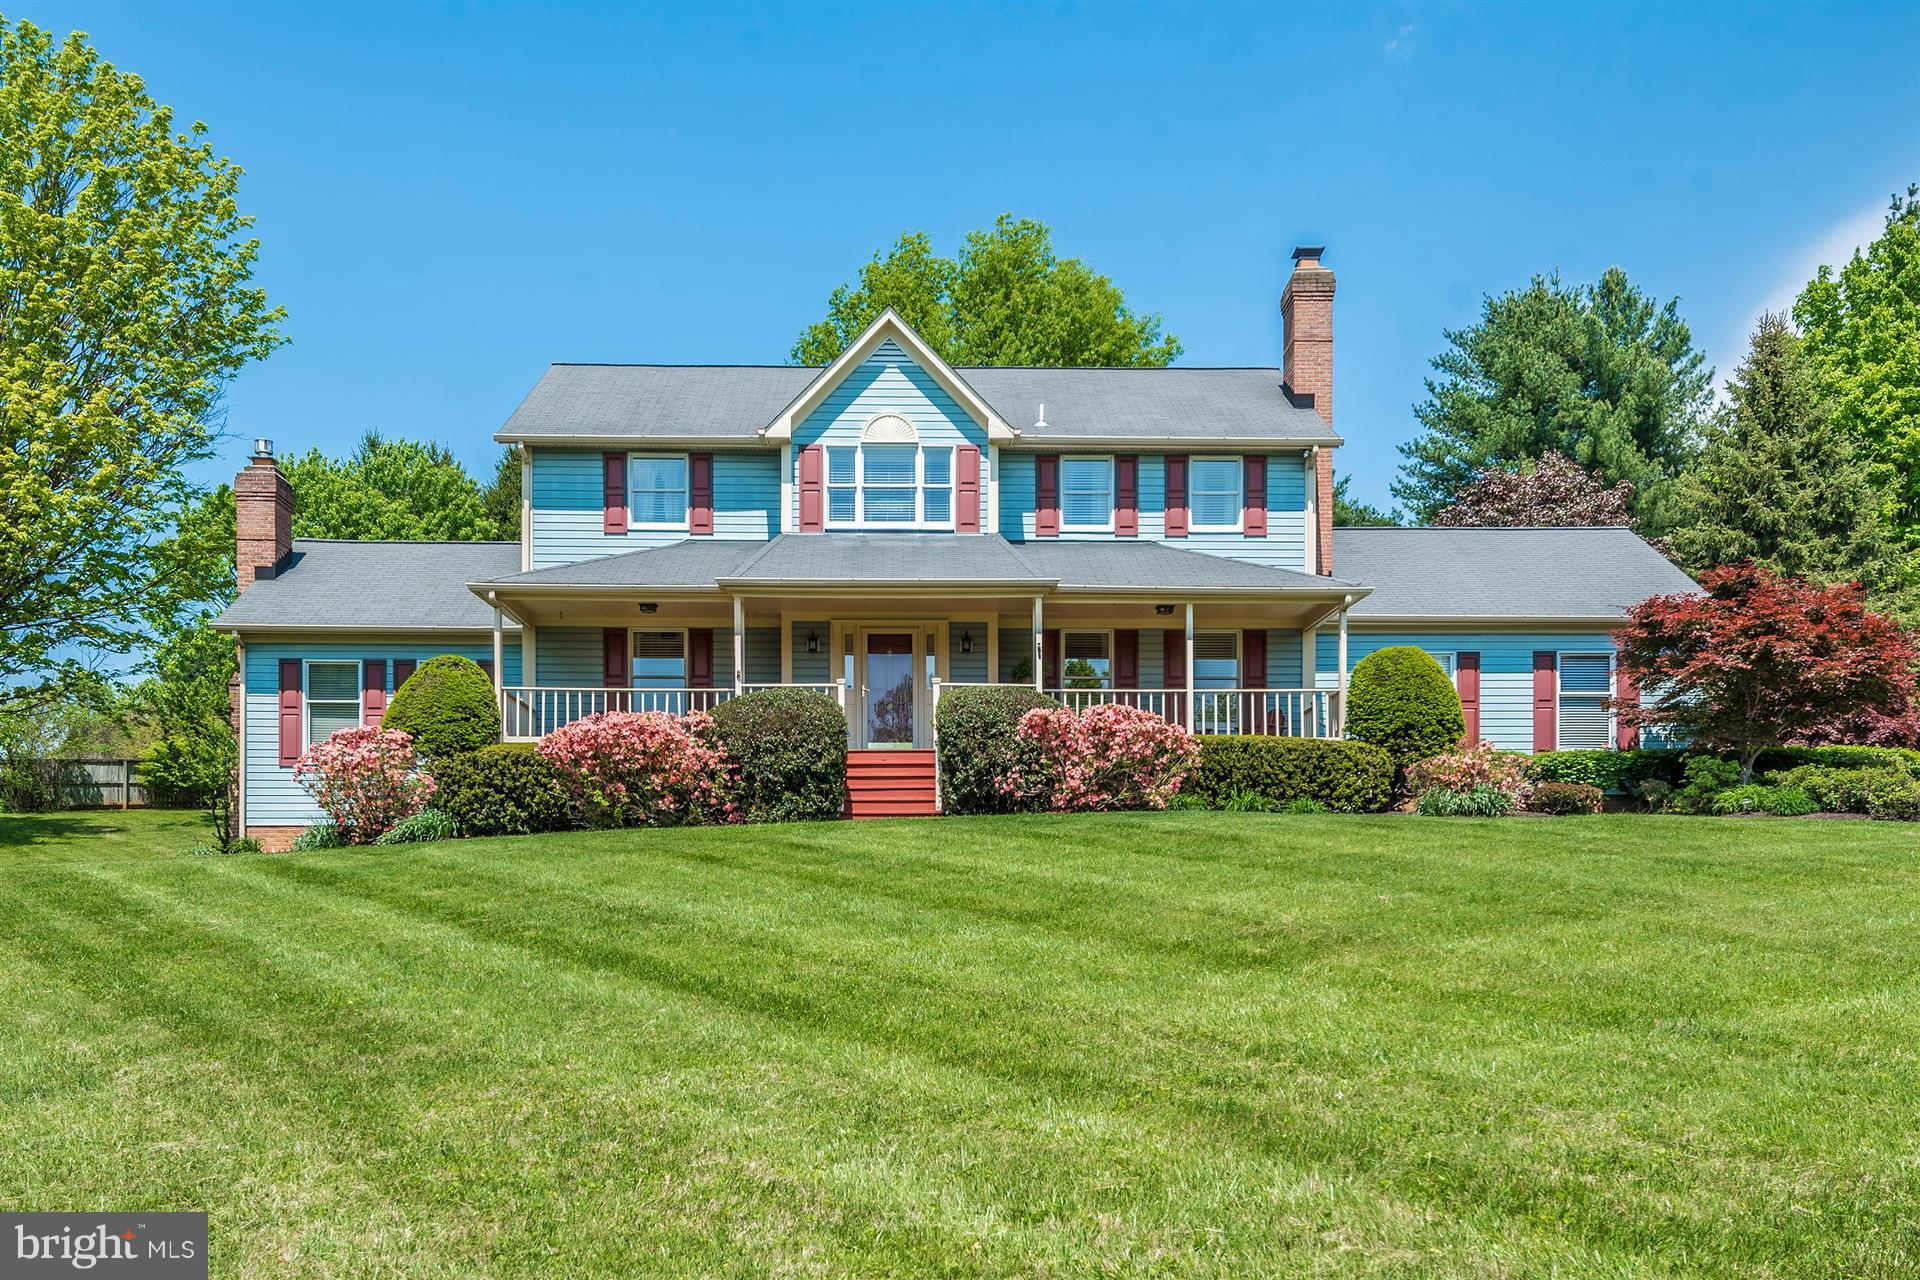 4060 ROXMILL COURT, GLENWOOD, MD 21738